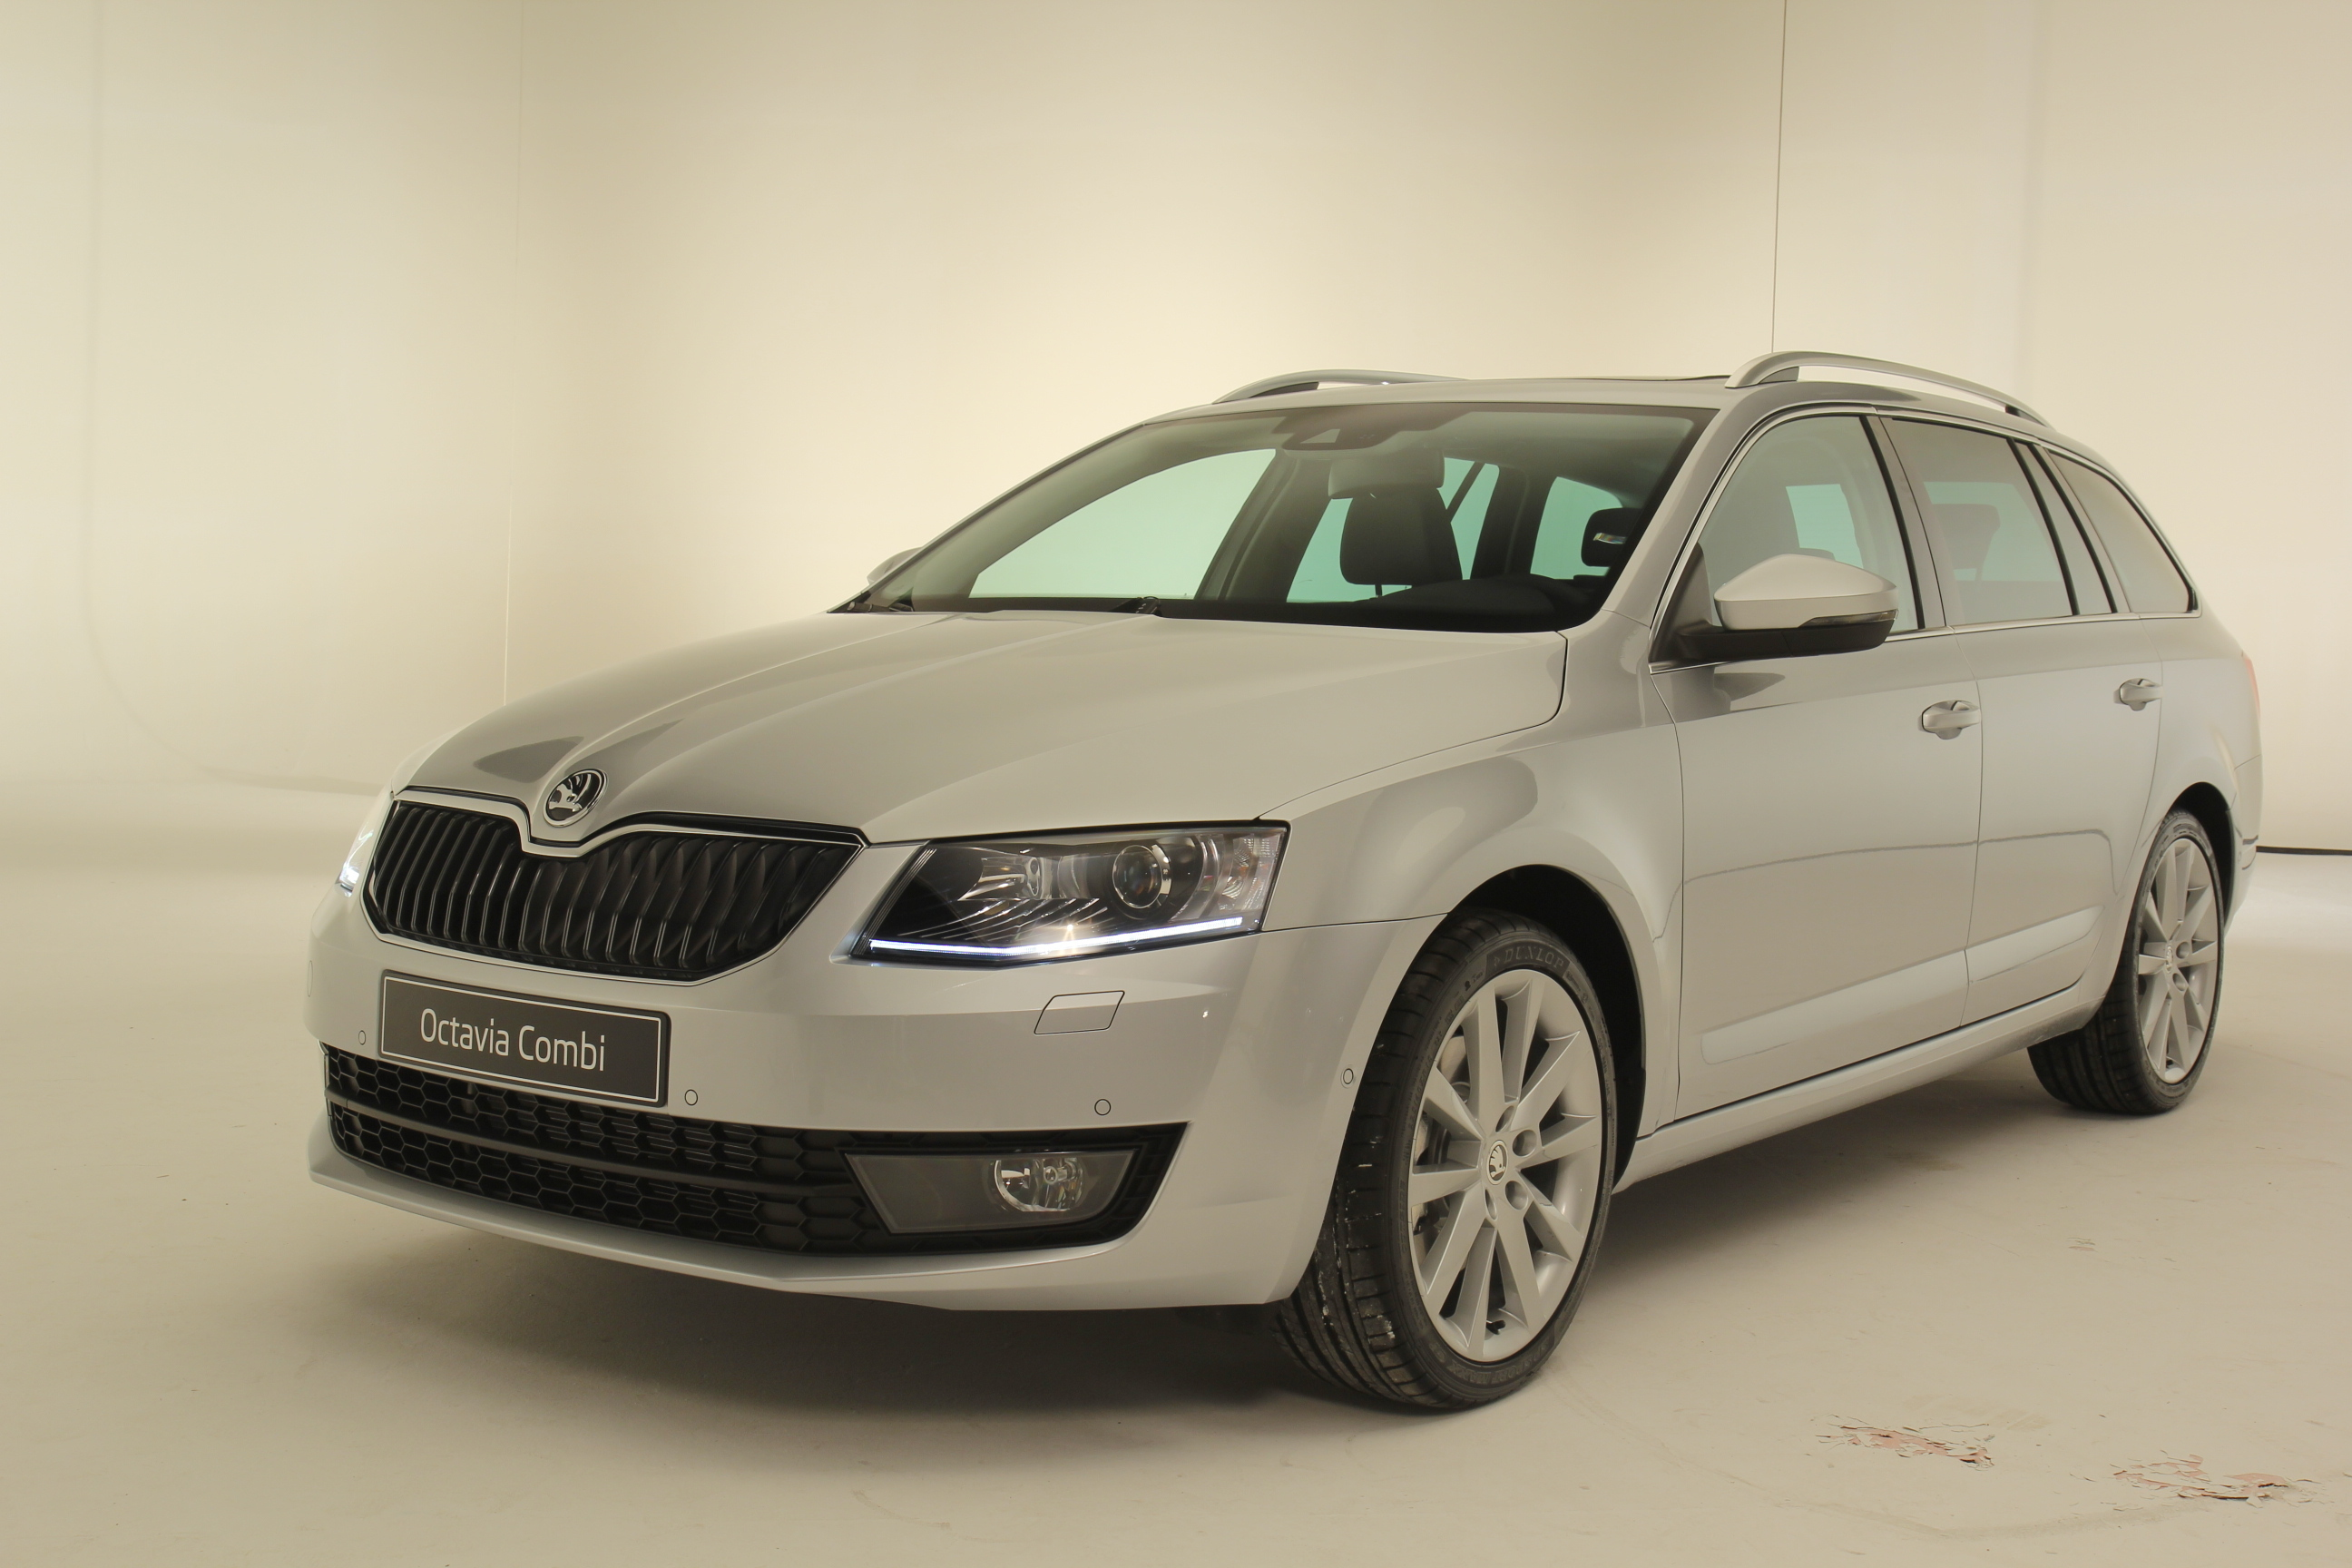 exclusivit caradisiac pr sentation vid o de la skoda octavia 3 combi. Black Bedroom Furniture Sets. Home Design Ideas